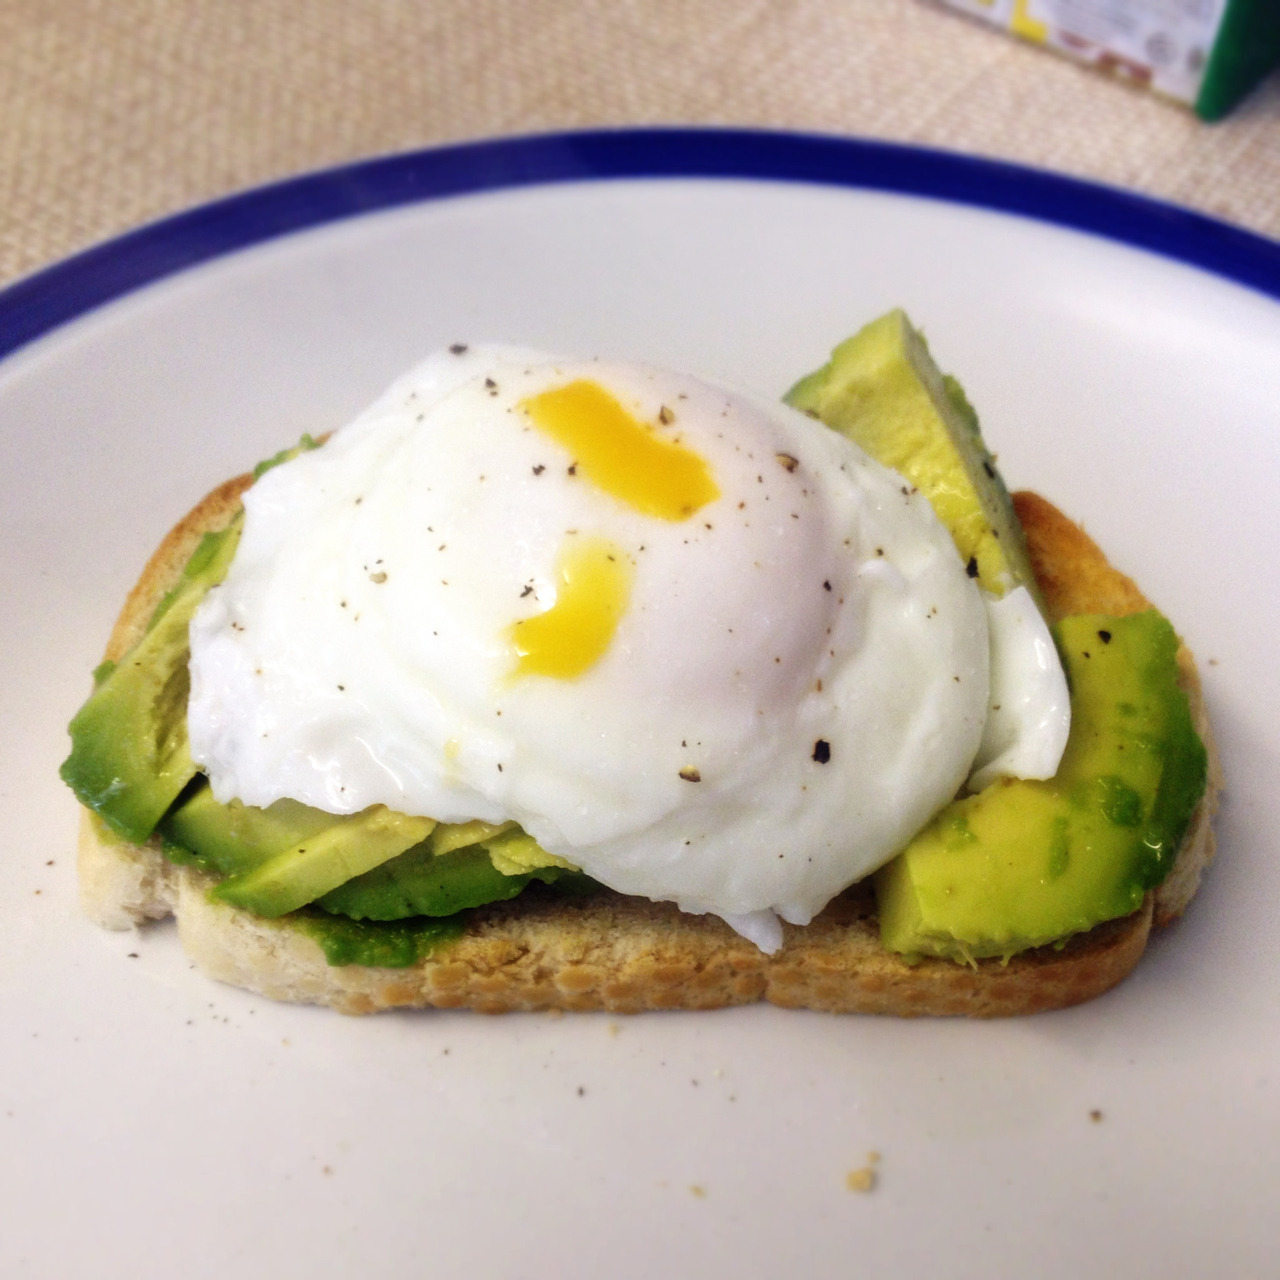 twinfood:  Poached egg with avocado on toast. Phoebe